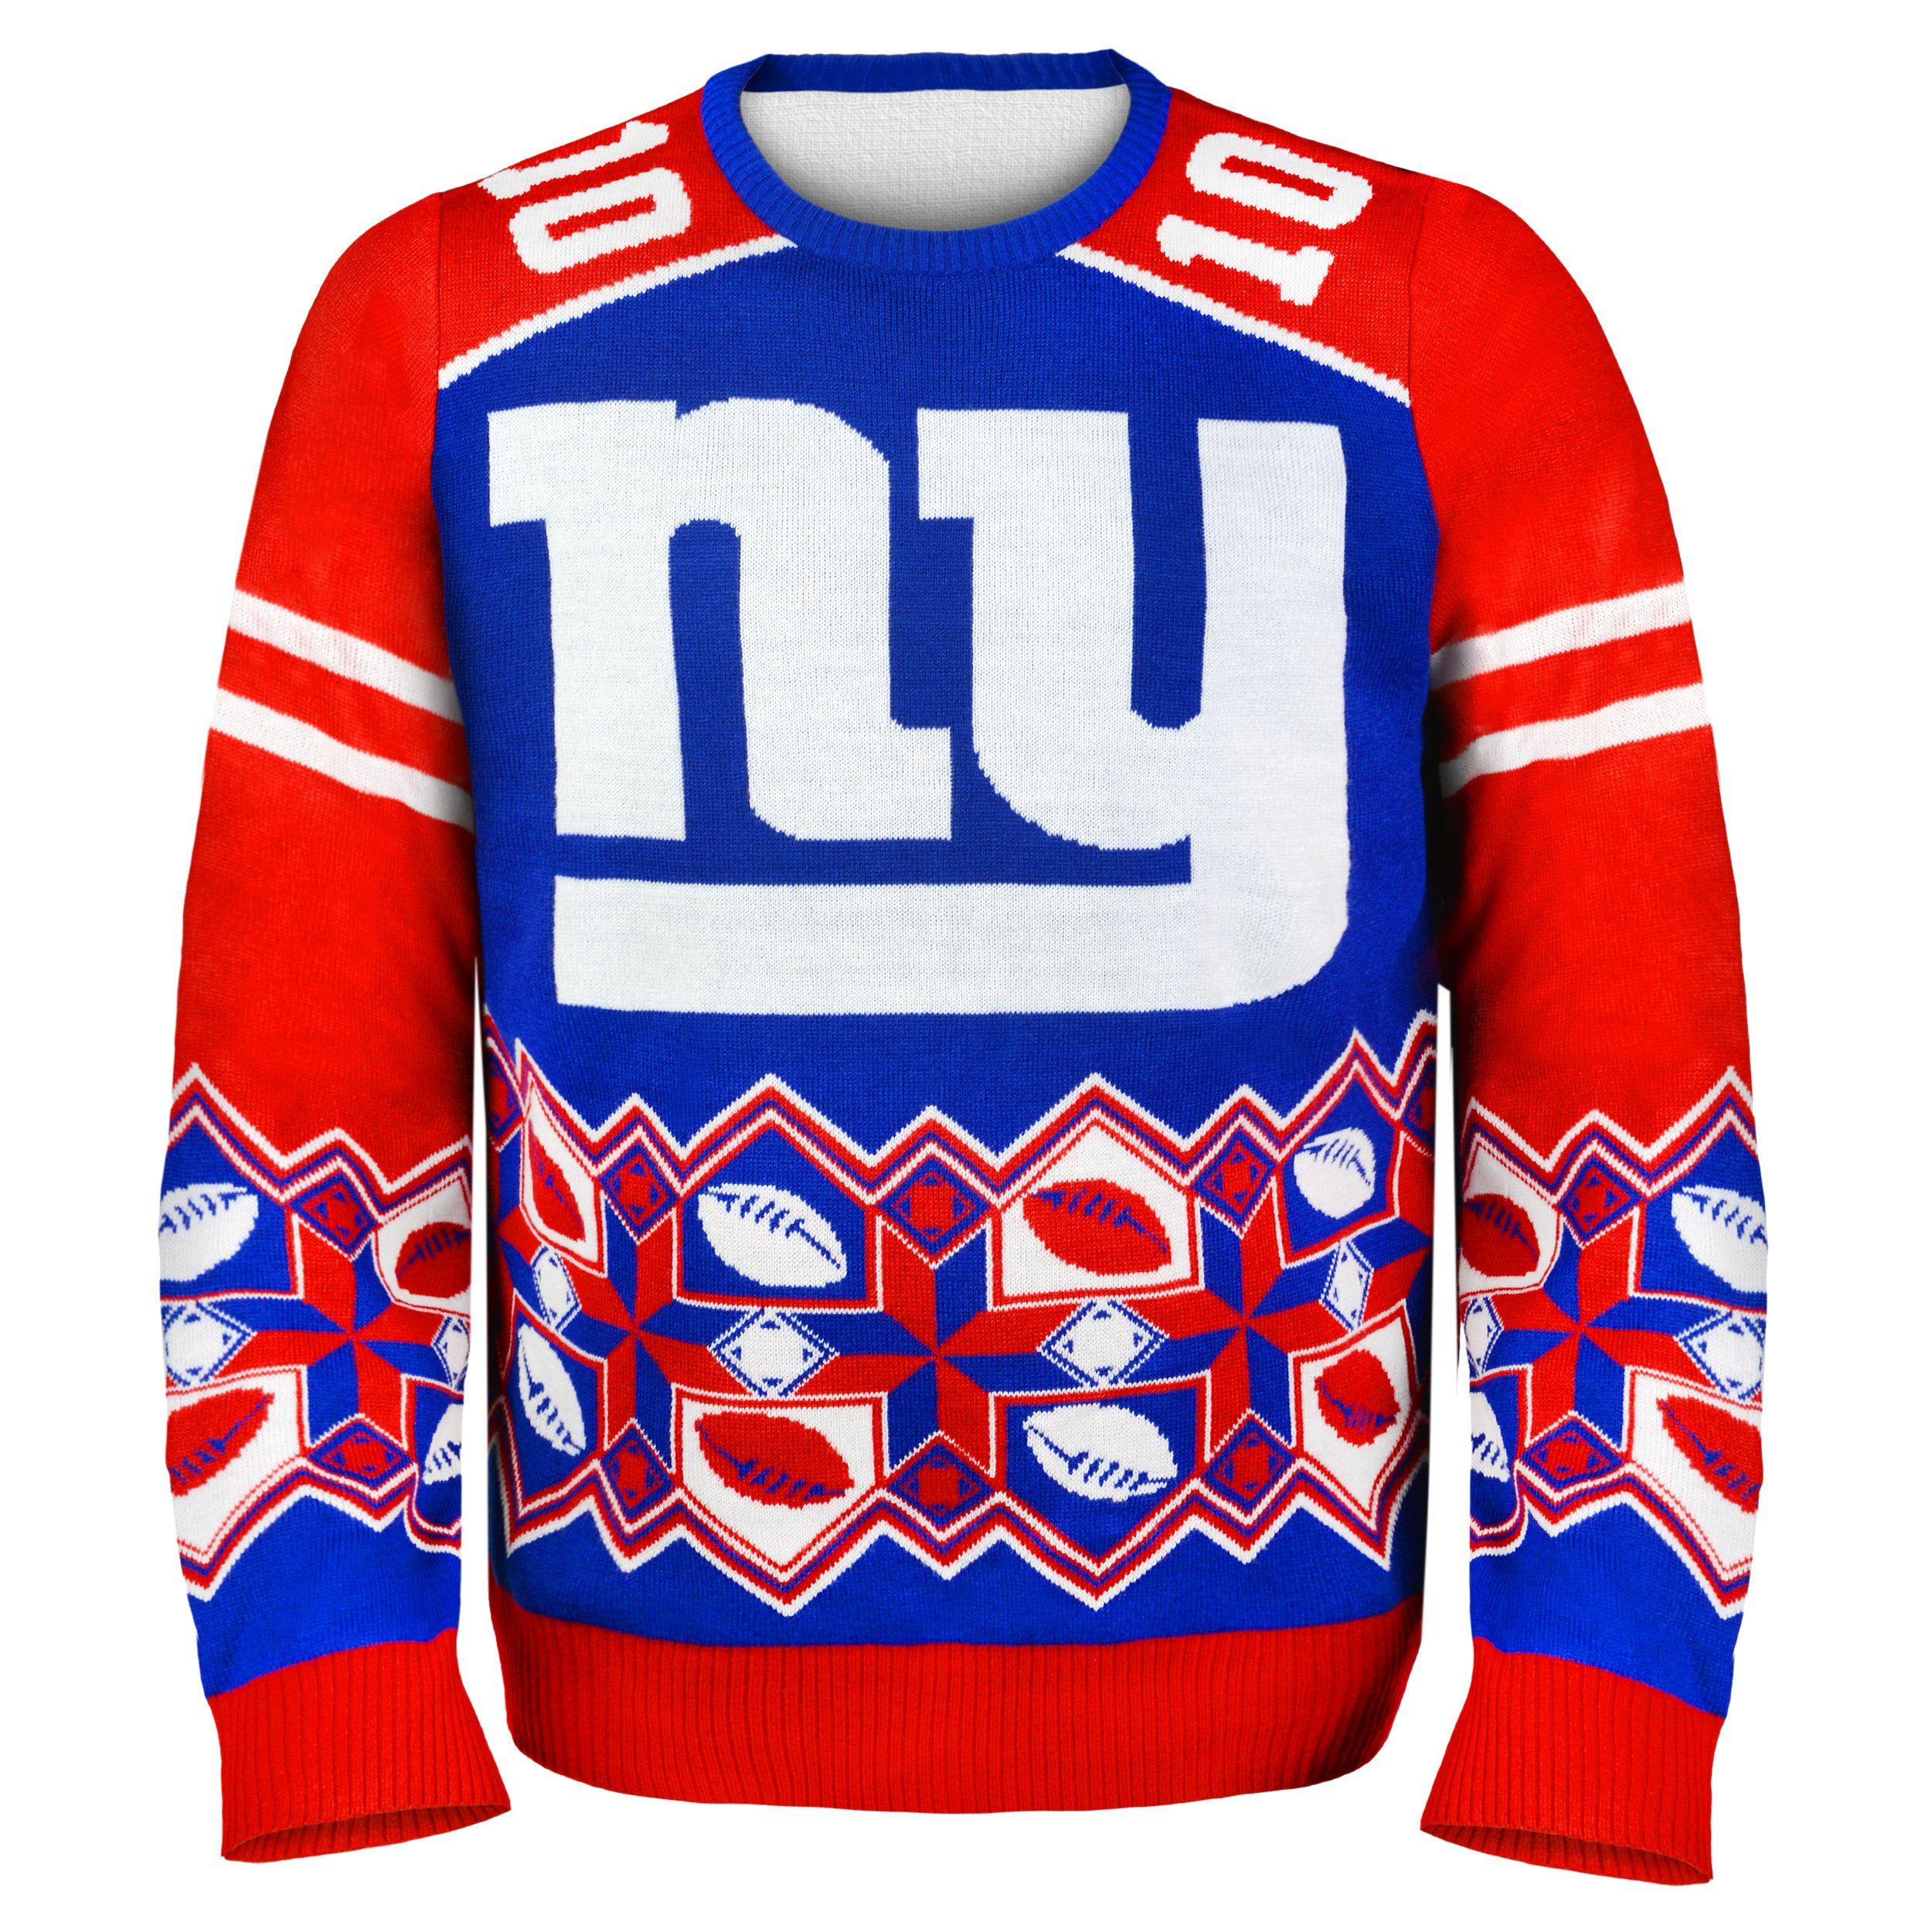 New York Giants Ugly Christmas Sweaters | Sports | Pinterest ...